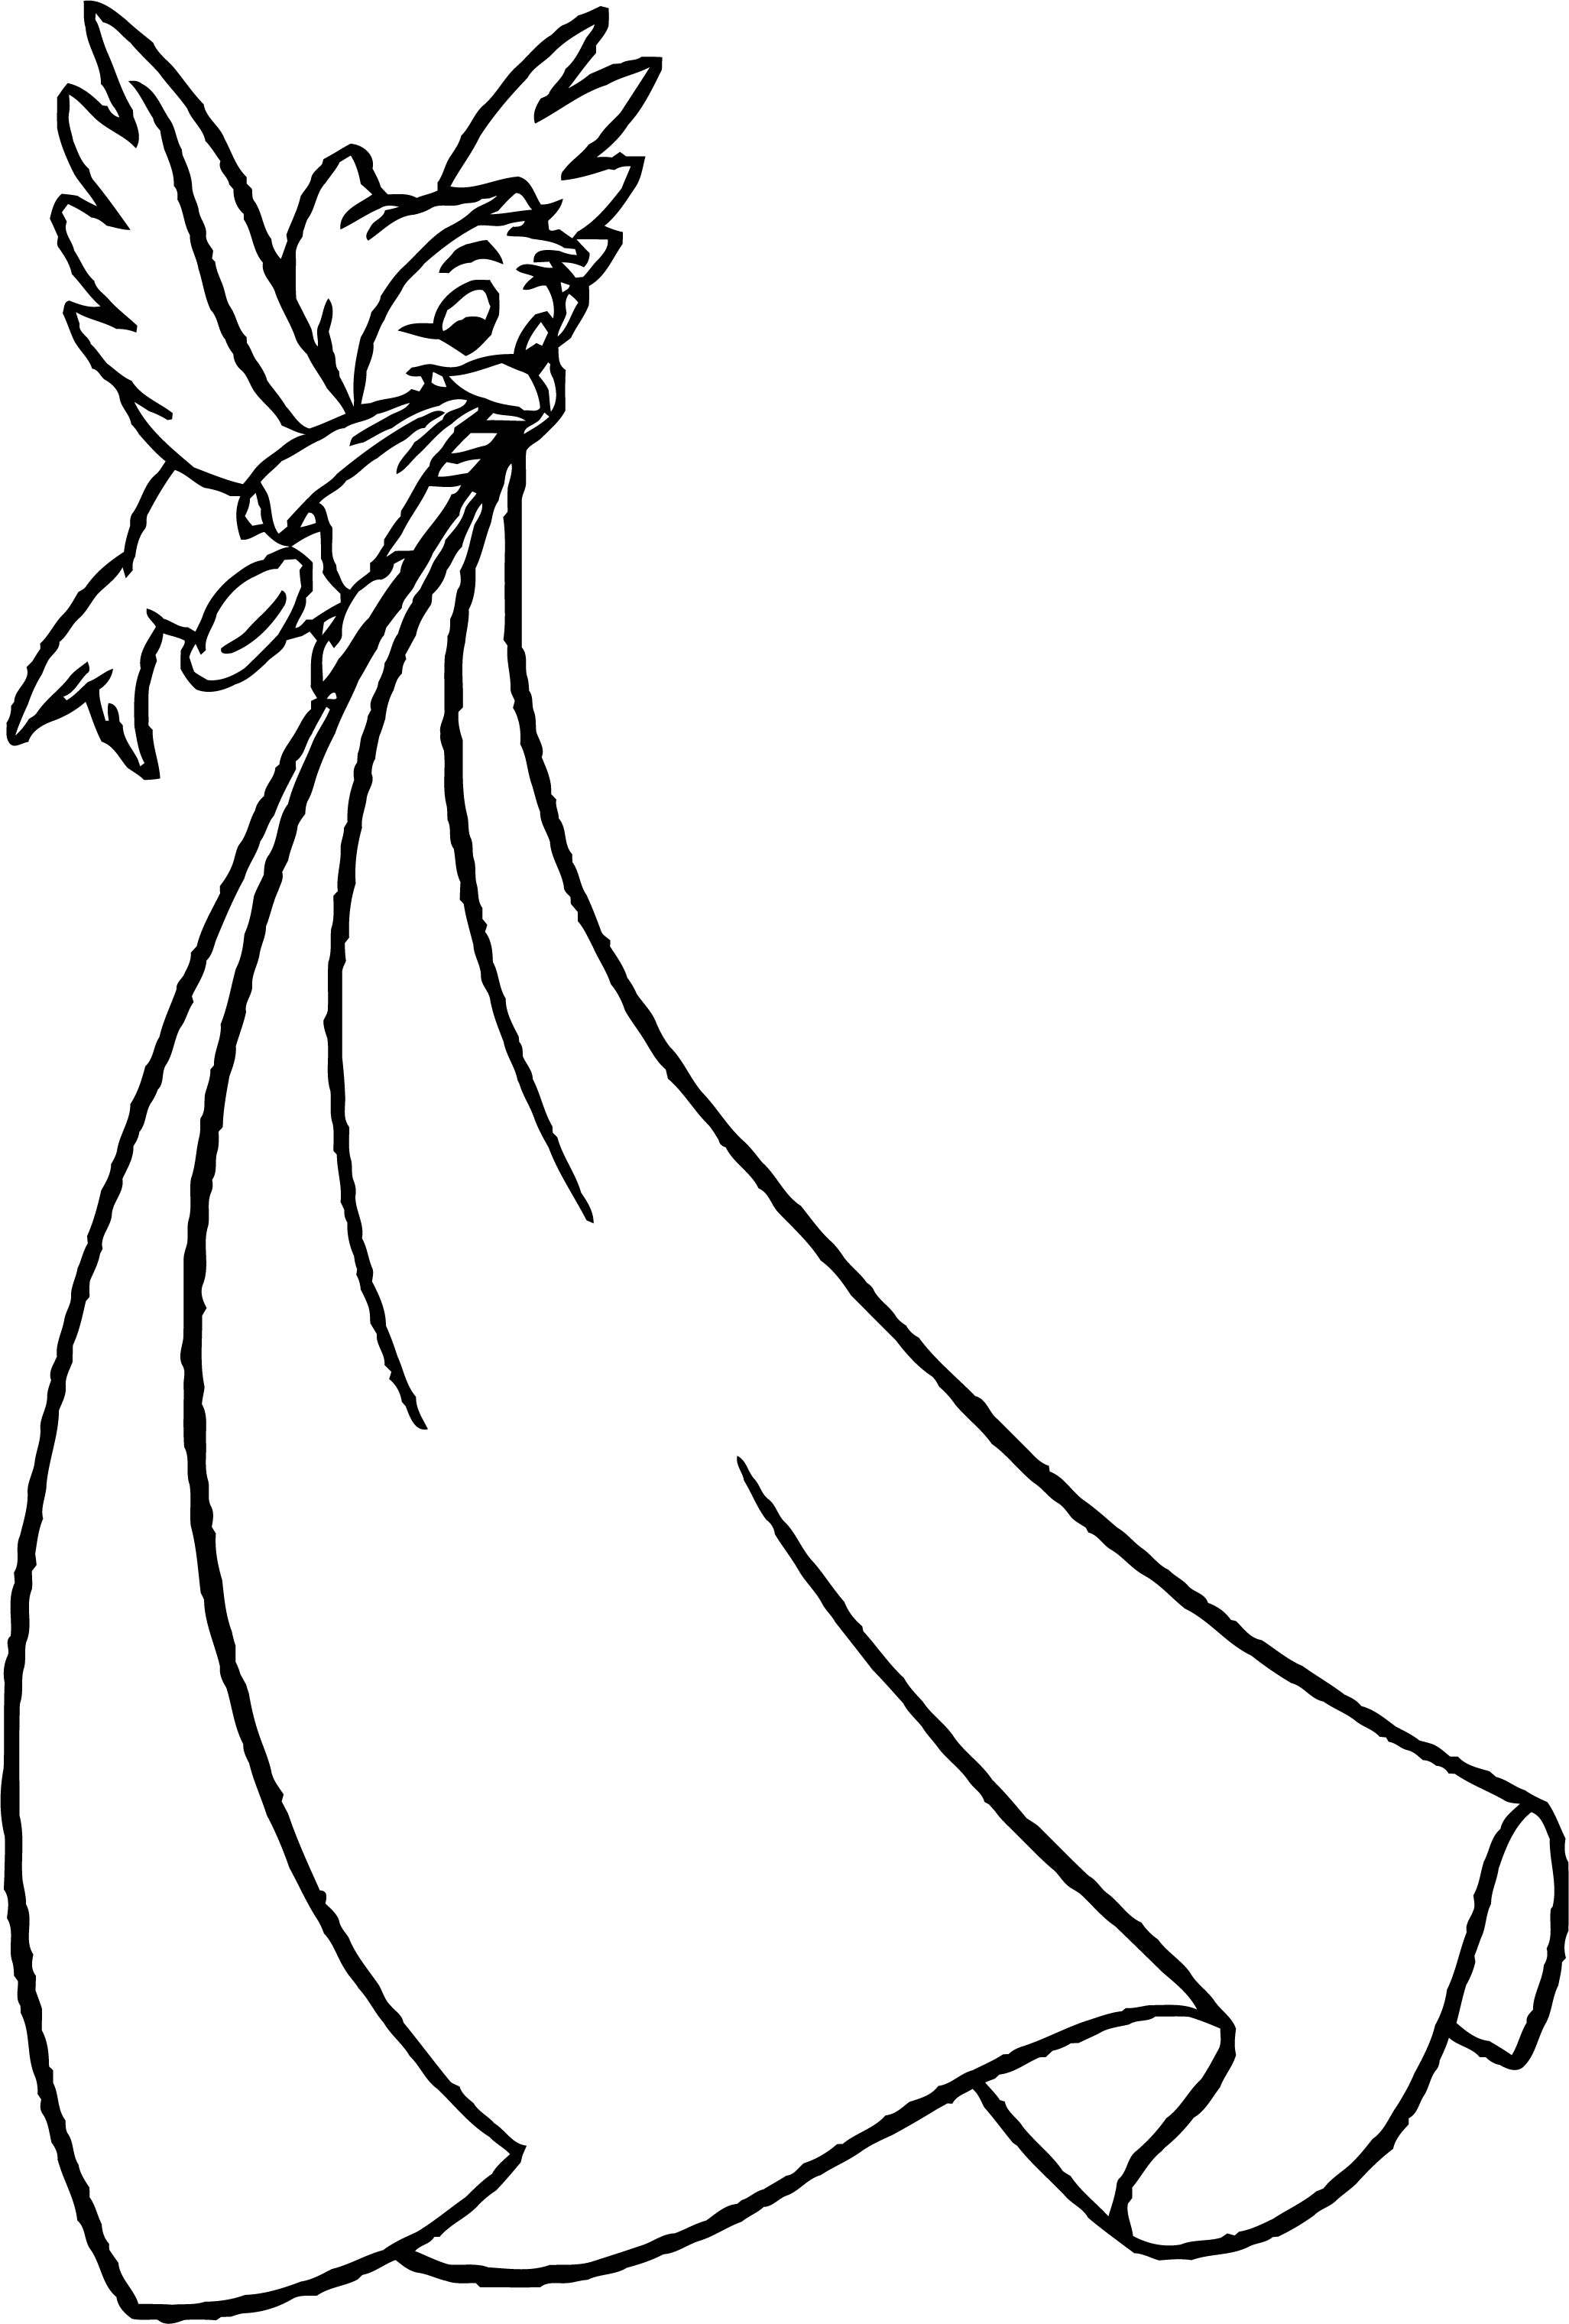 Bird Carrying Cloth Coloring Pages